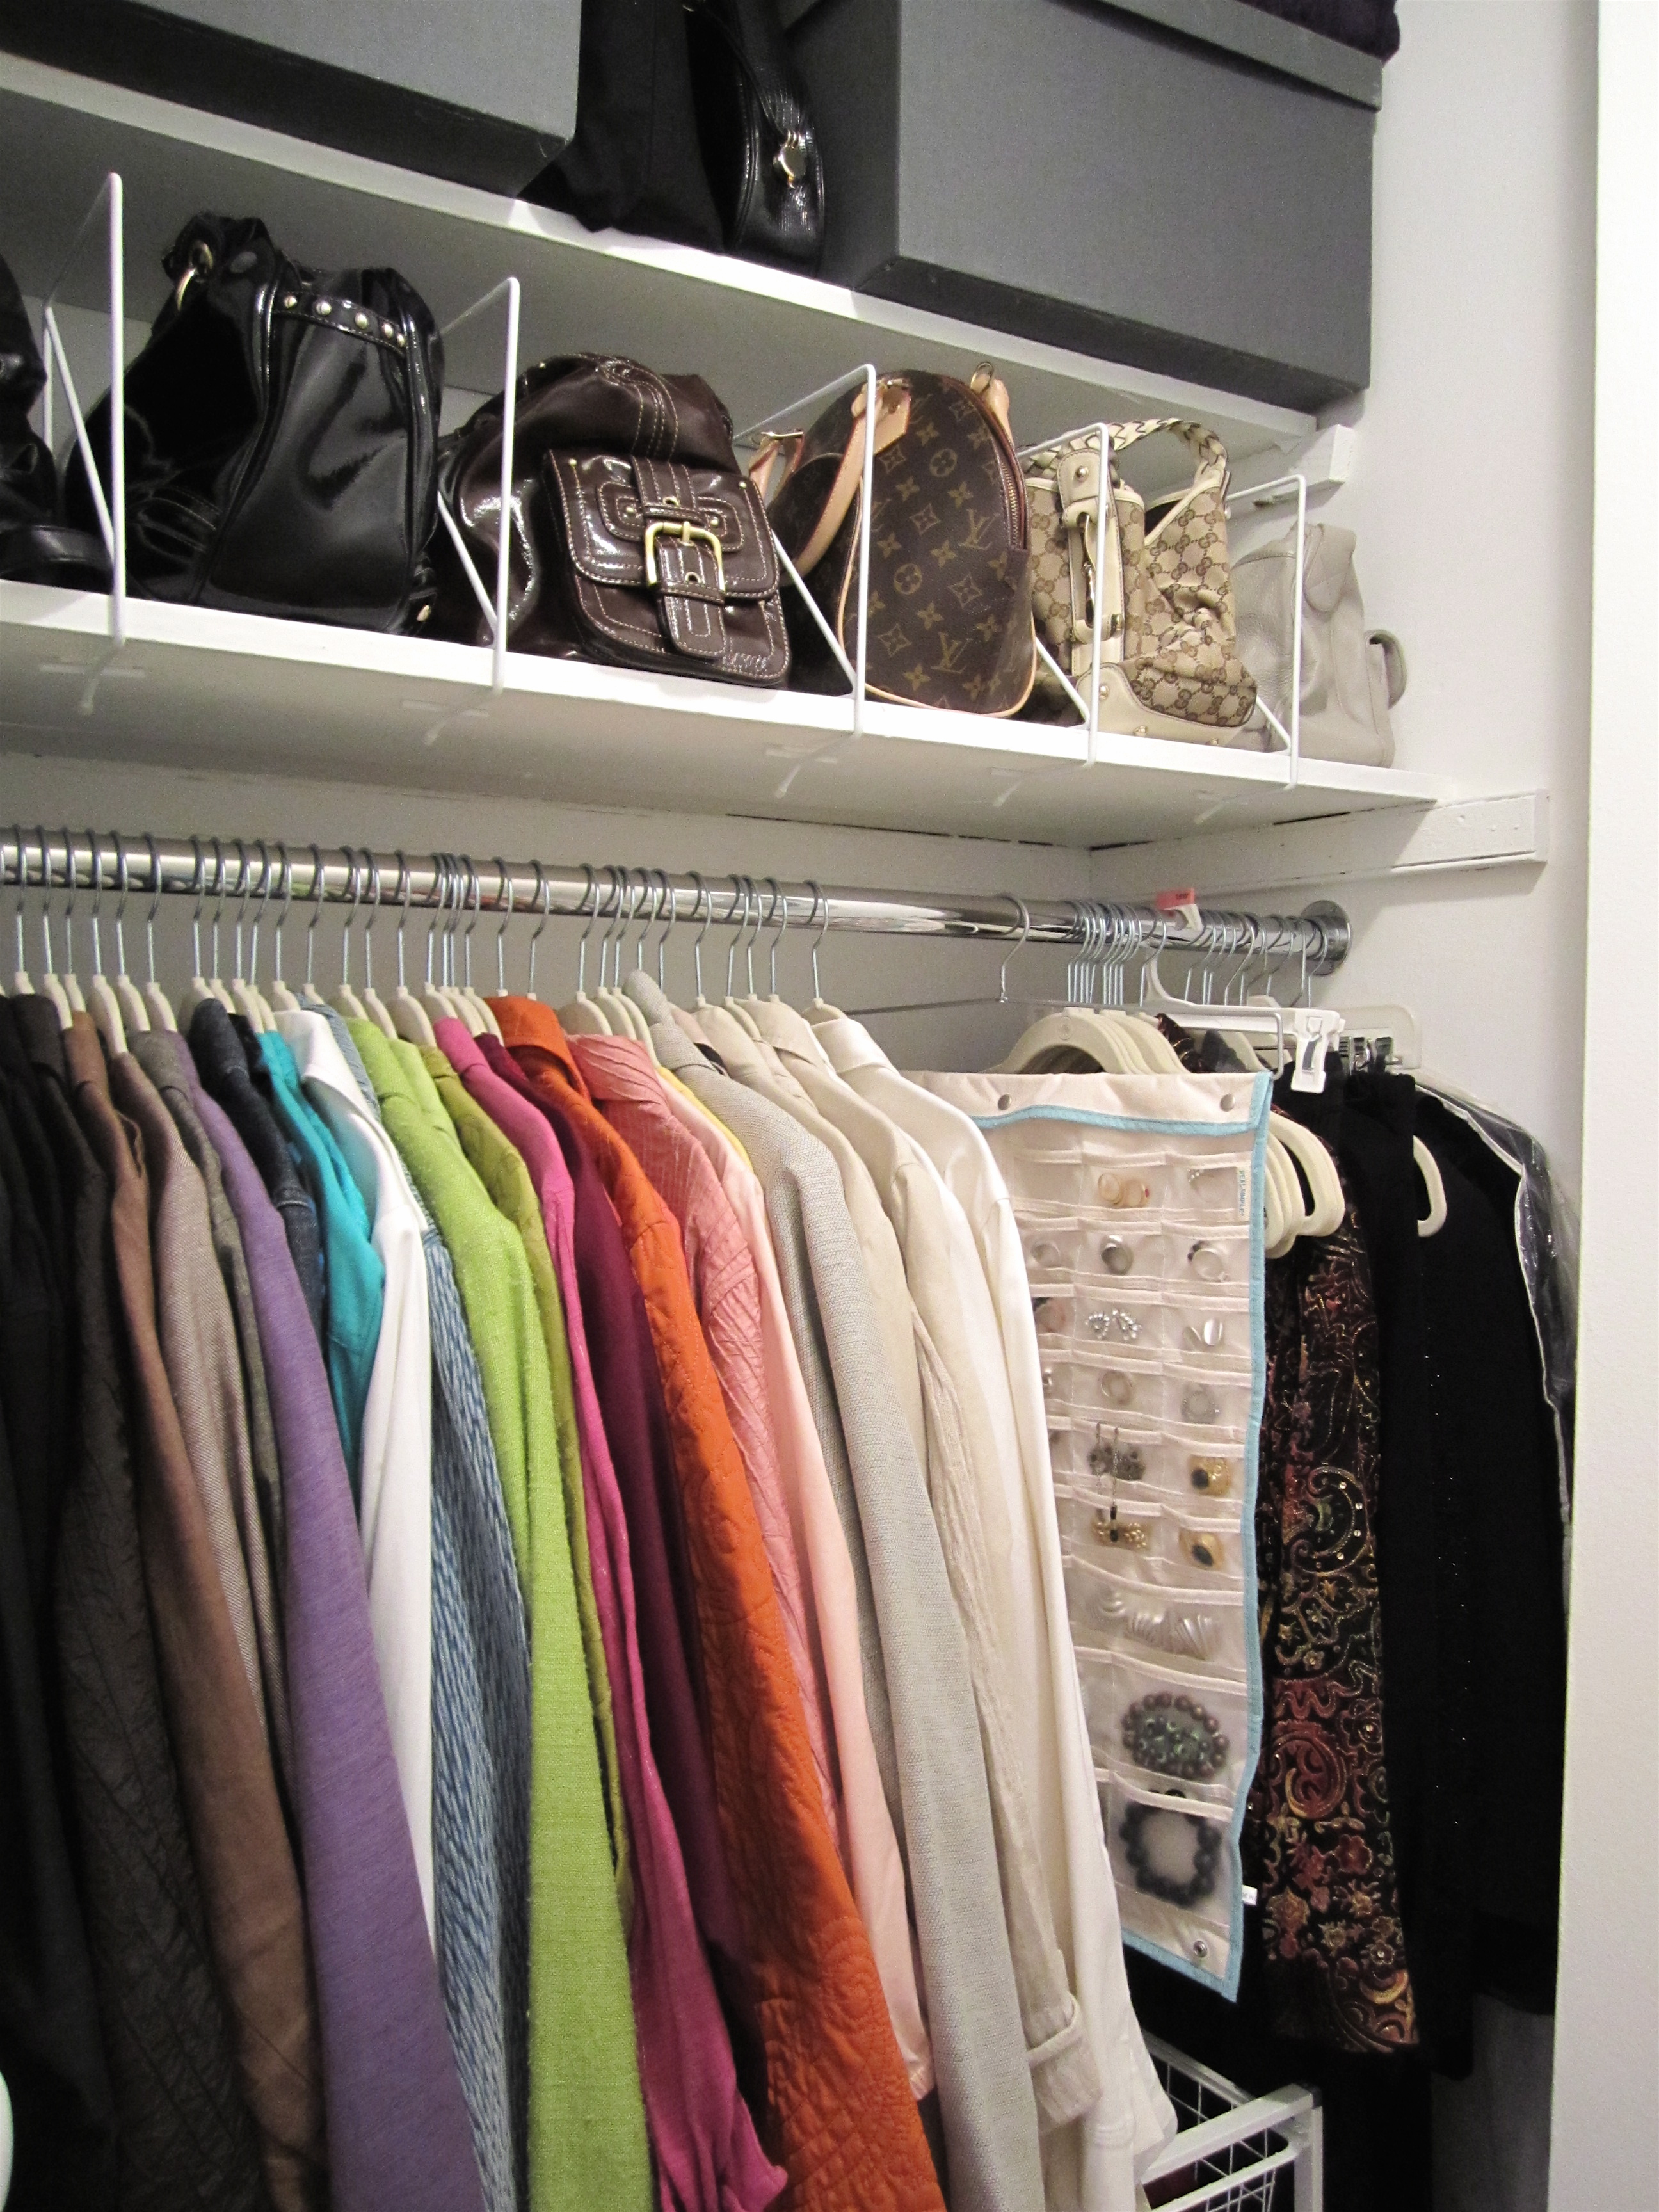 This Apt Has Two Great Clothes Closets And I Wanted To Show The Progress  Weu0027ve Made With Them. Closet #1 Has Boxed And Hanging Off Season Clothes,  ...